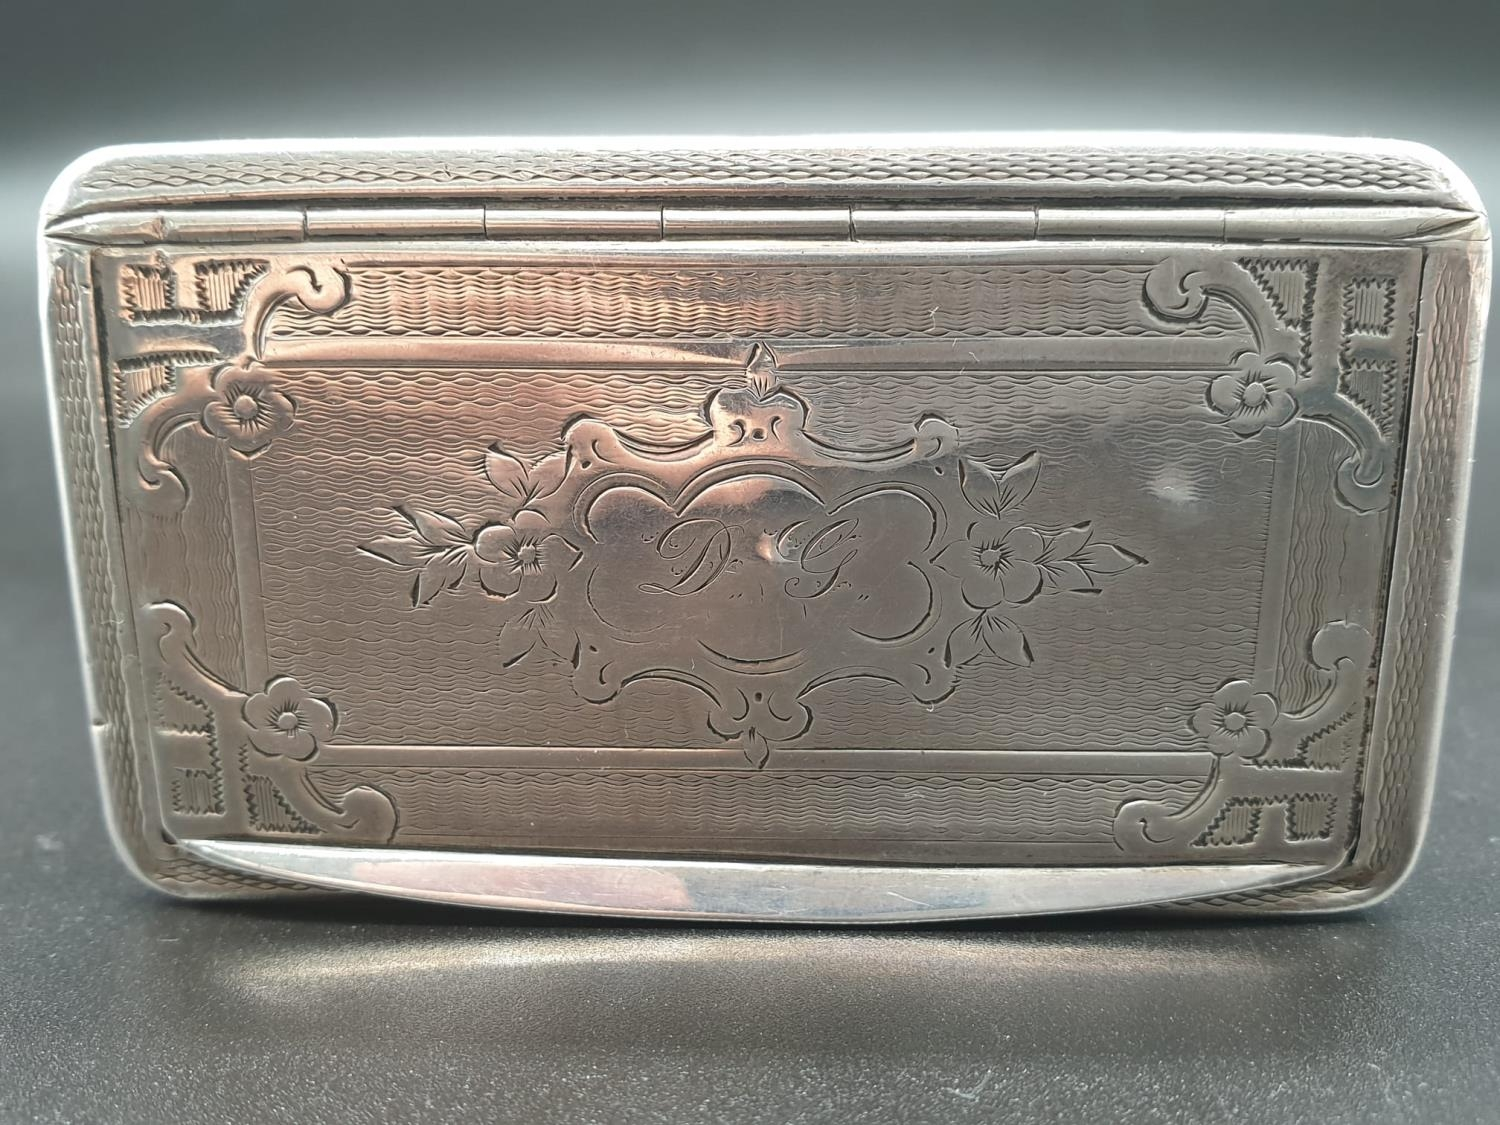 Antique French Gilt Solid Silver 1880s Snuff Box. 7.8cm x 4.5. 54.5g - Image 3 of 9